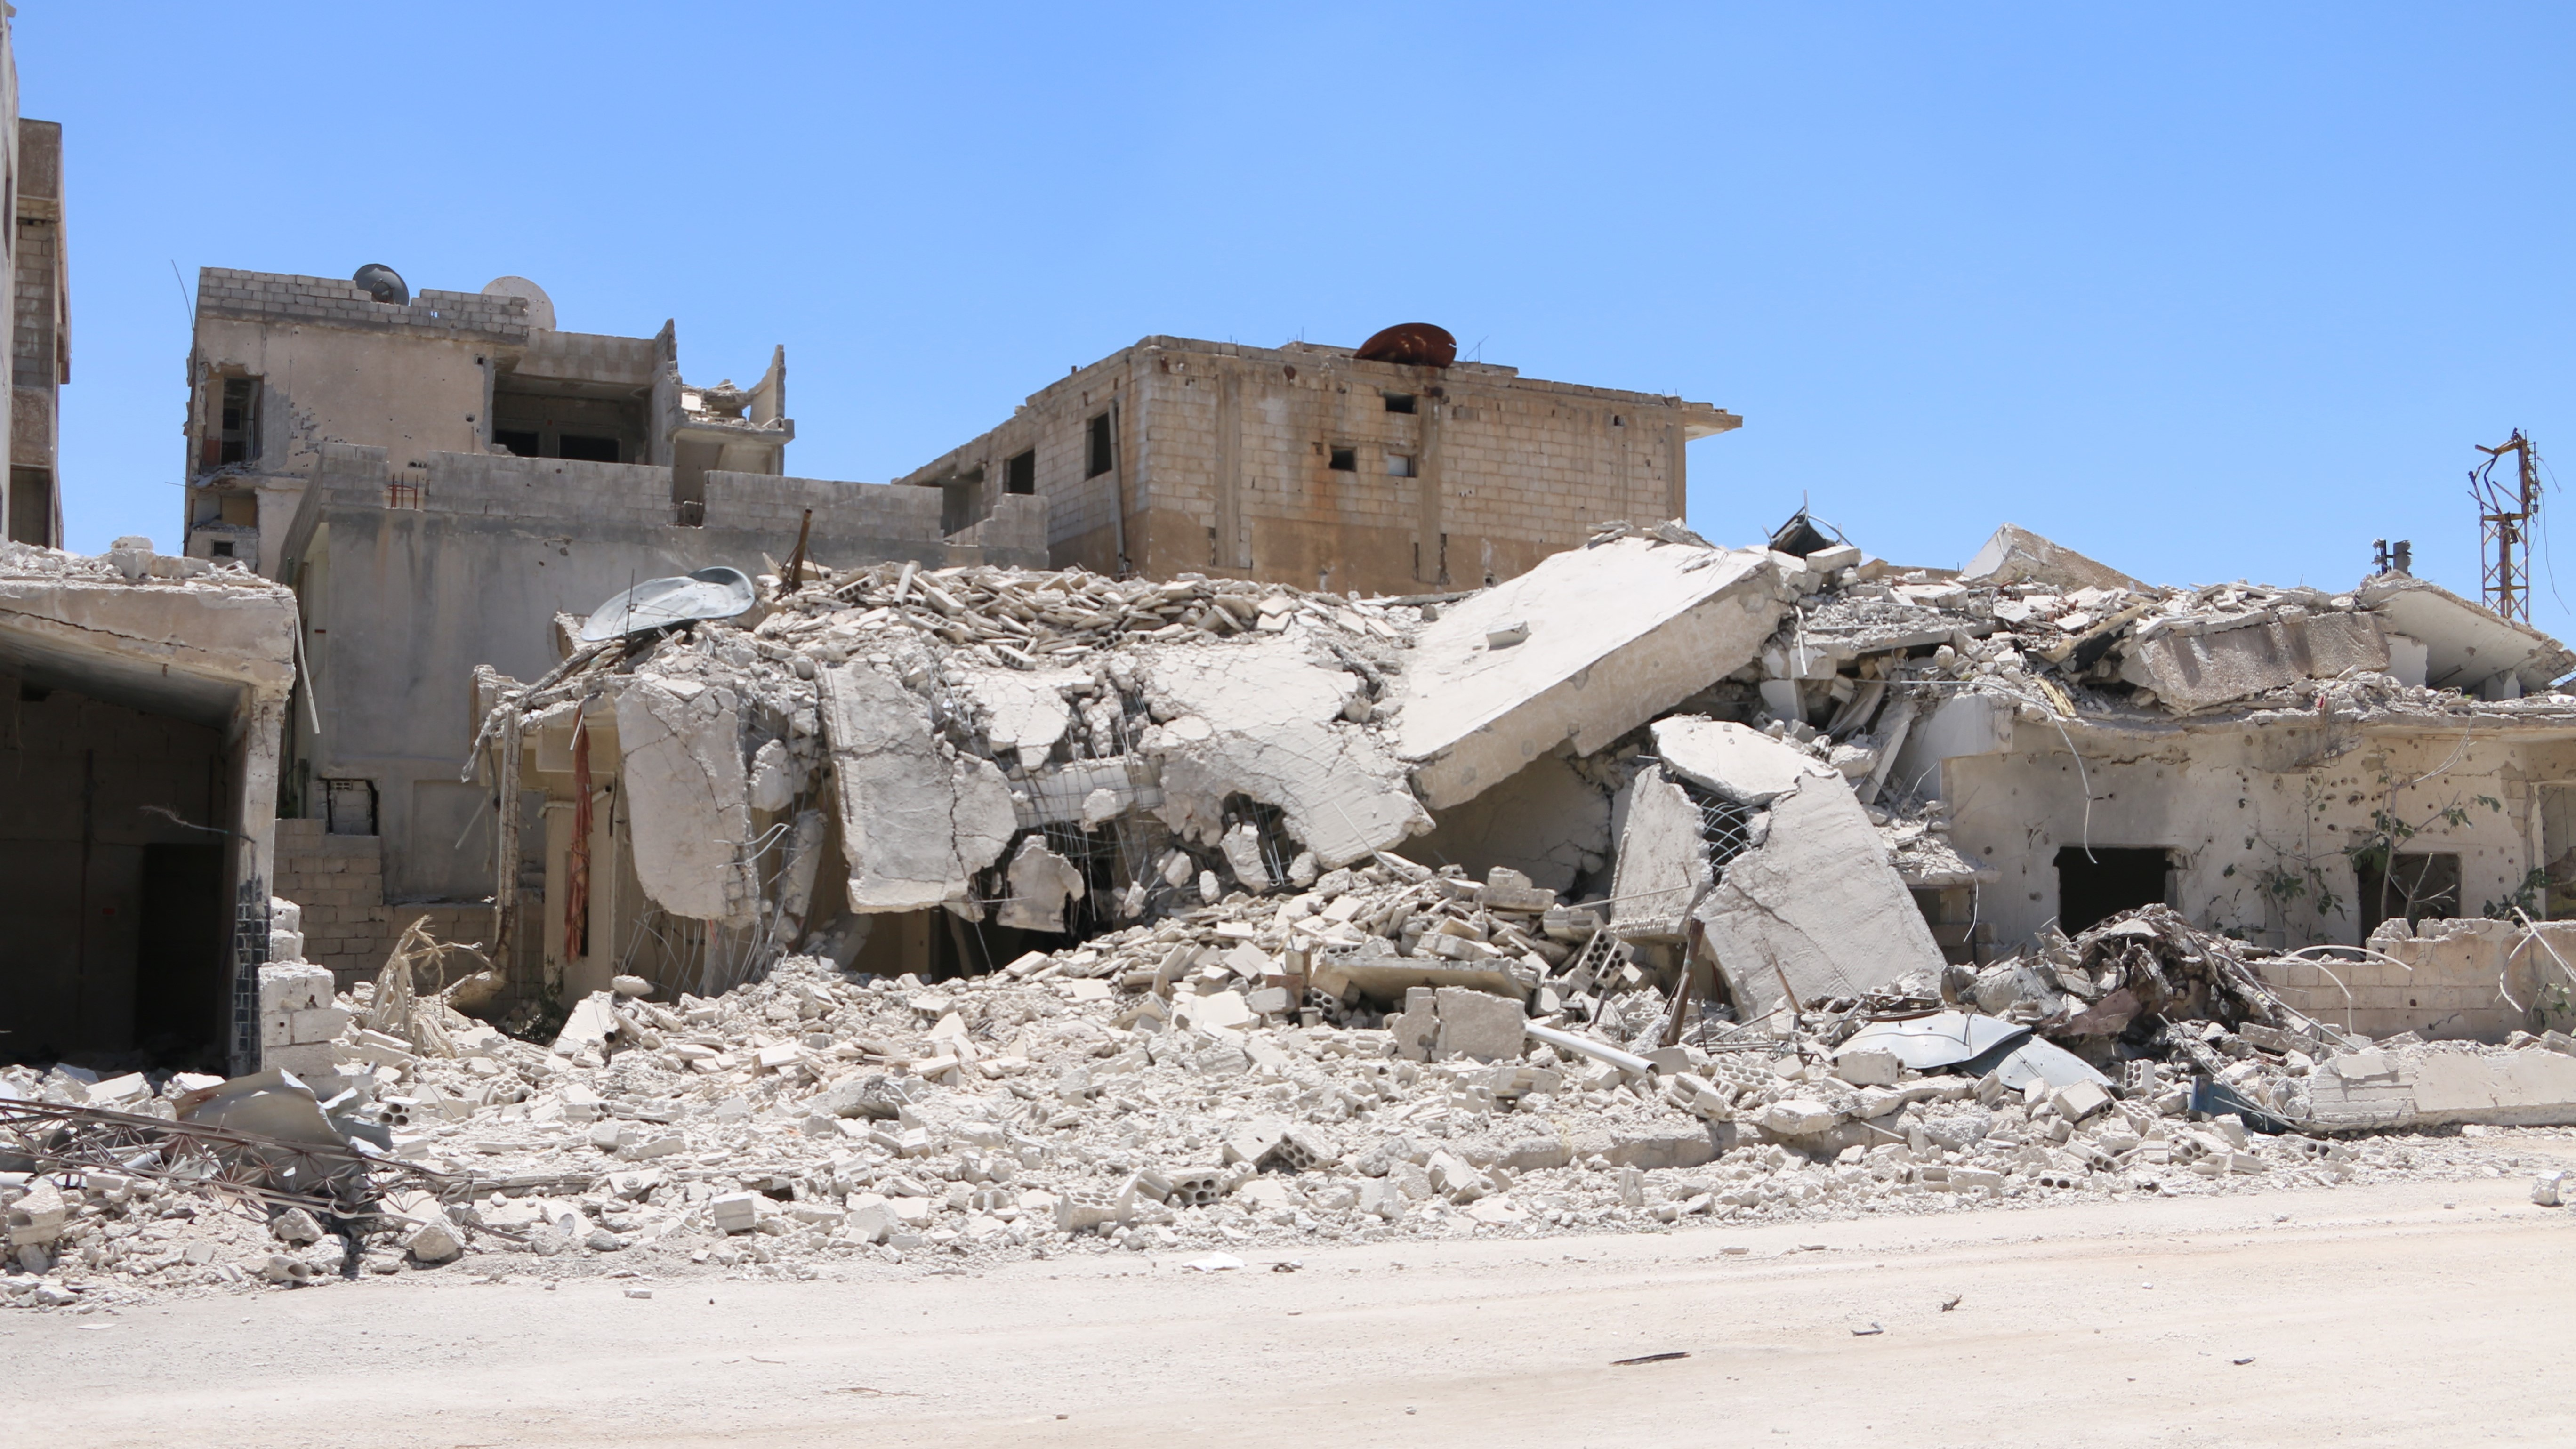 The Syrian city of Daraa, heavily hit by barrel bombs and other strikes by the Assad regime, is one of the areas covered by the current cease-fire. For the past eight days, residents have had a respite from the regime